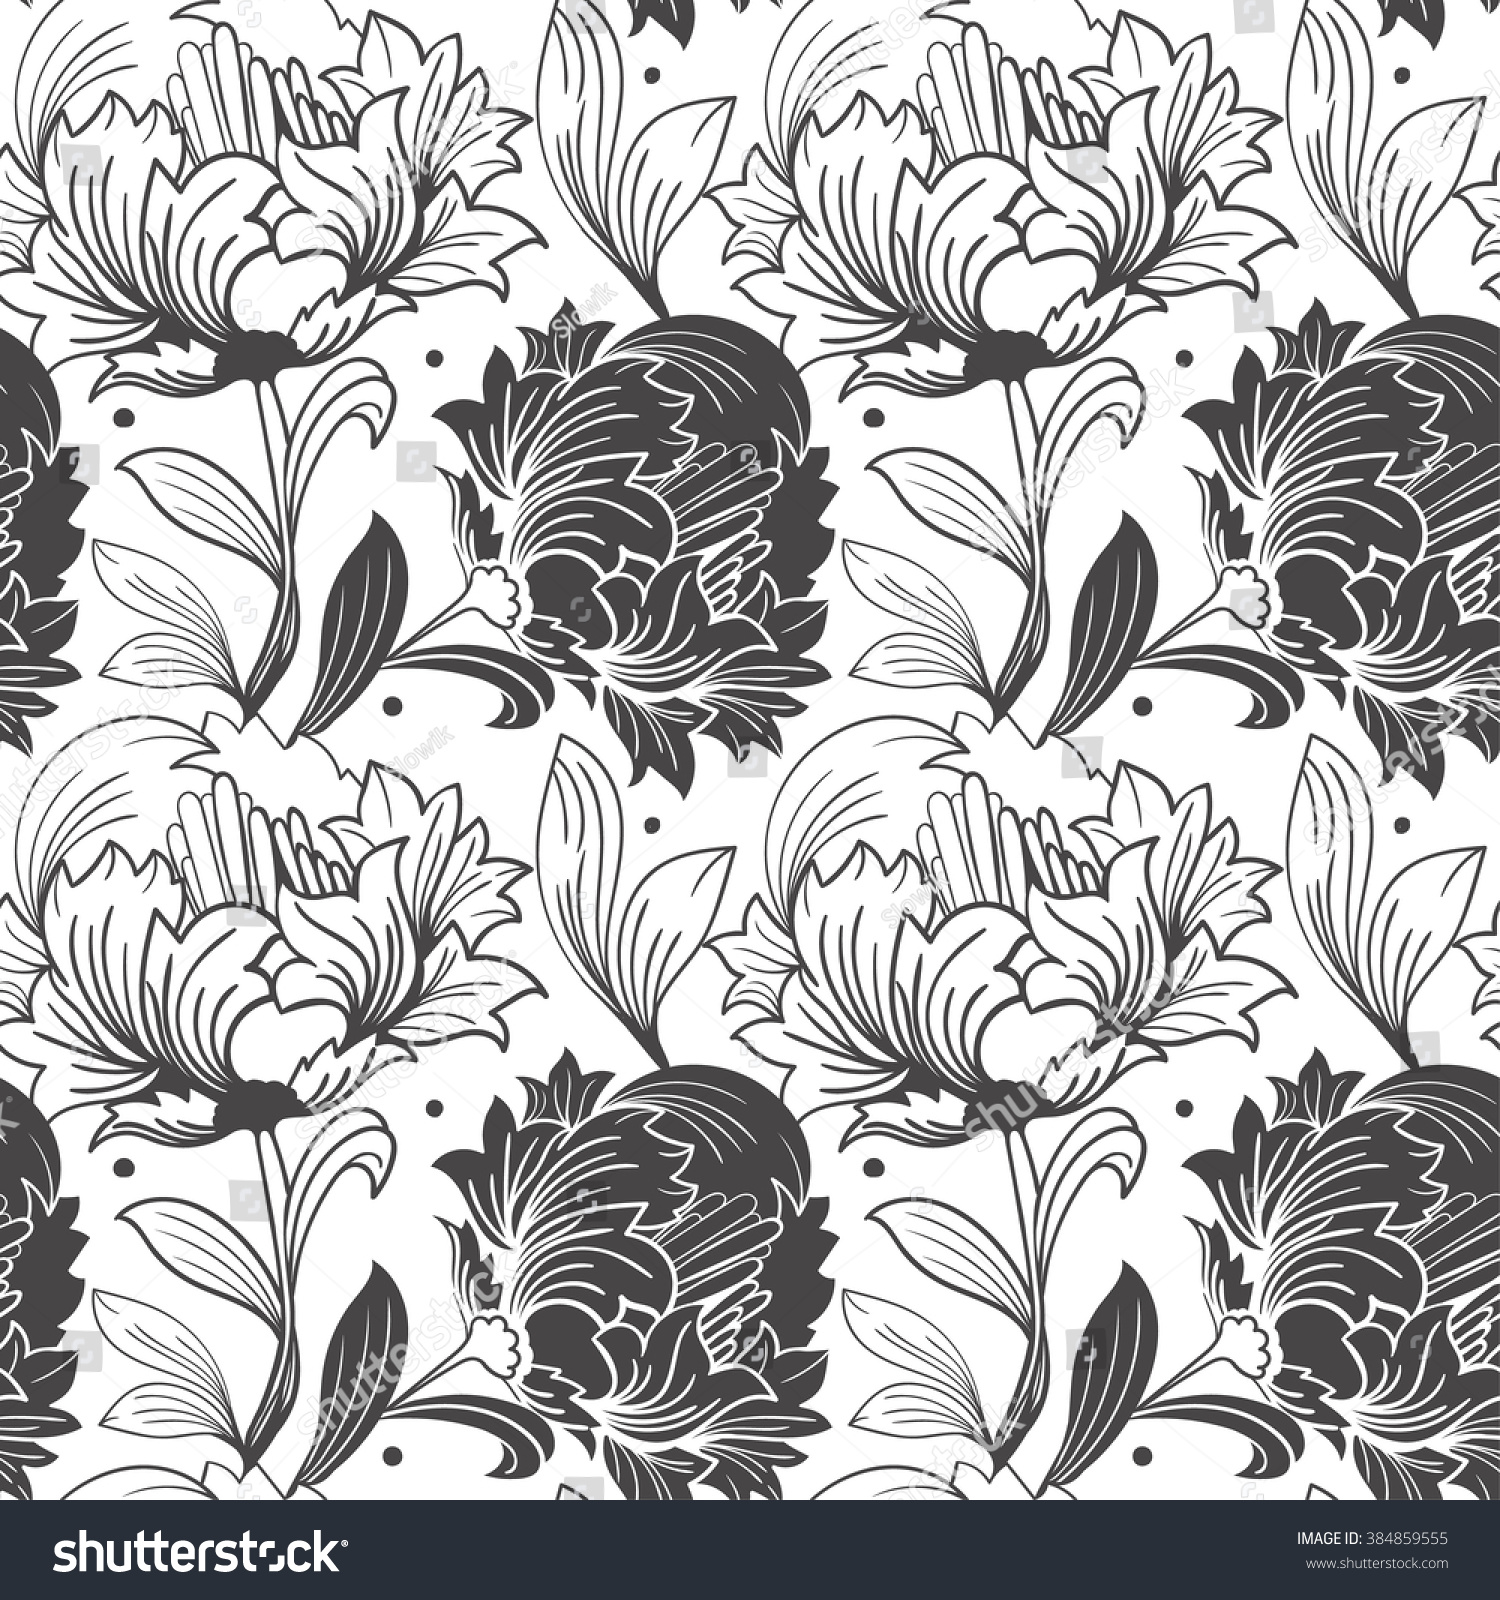 Seamless Pattern Tulips Blackandwhite Line Linear Stock Vector